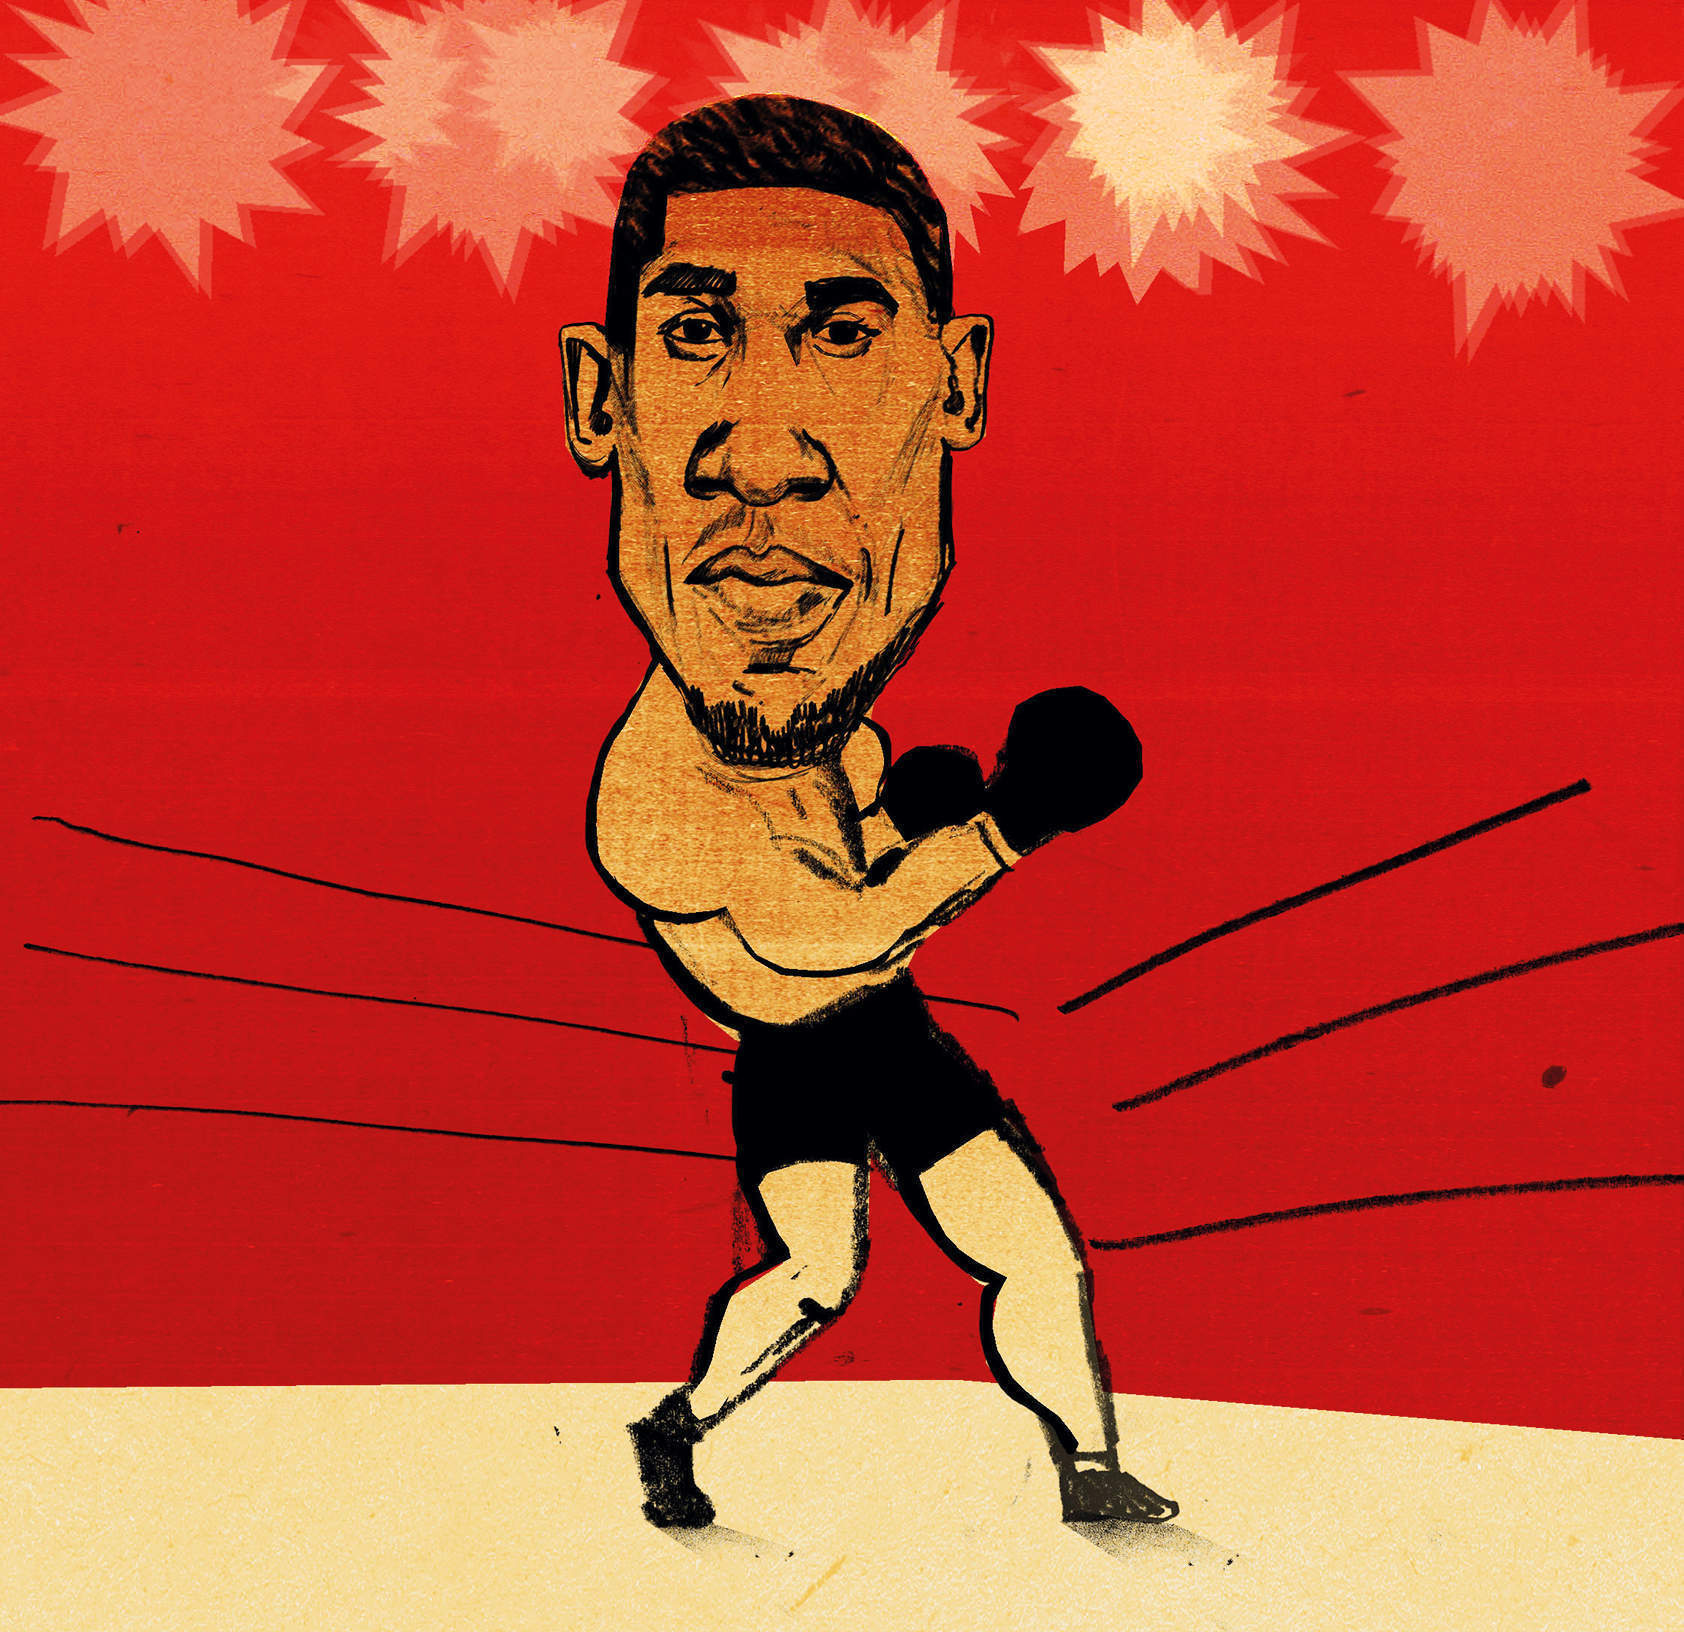 The friendly hitman: how boxing gave Anthony Joshua a second chance